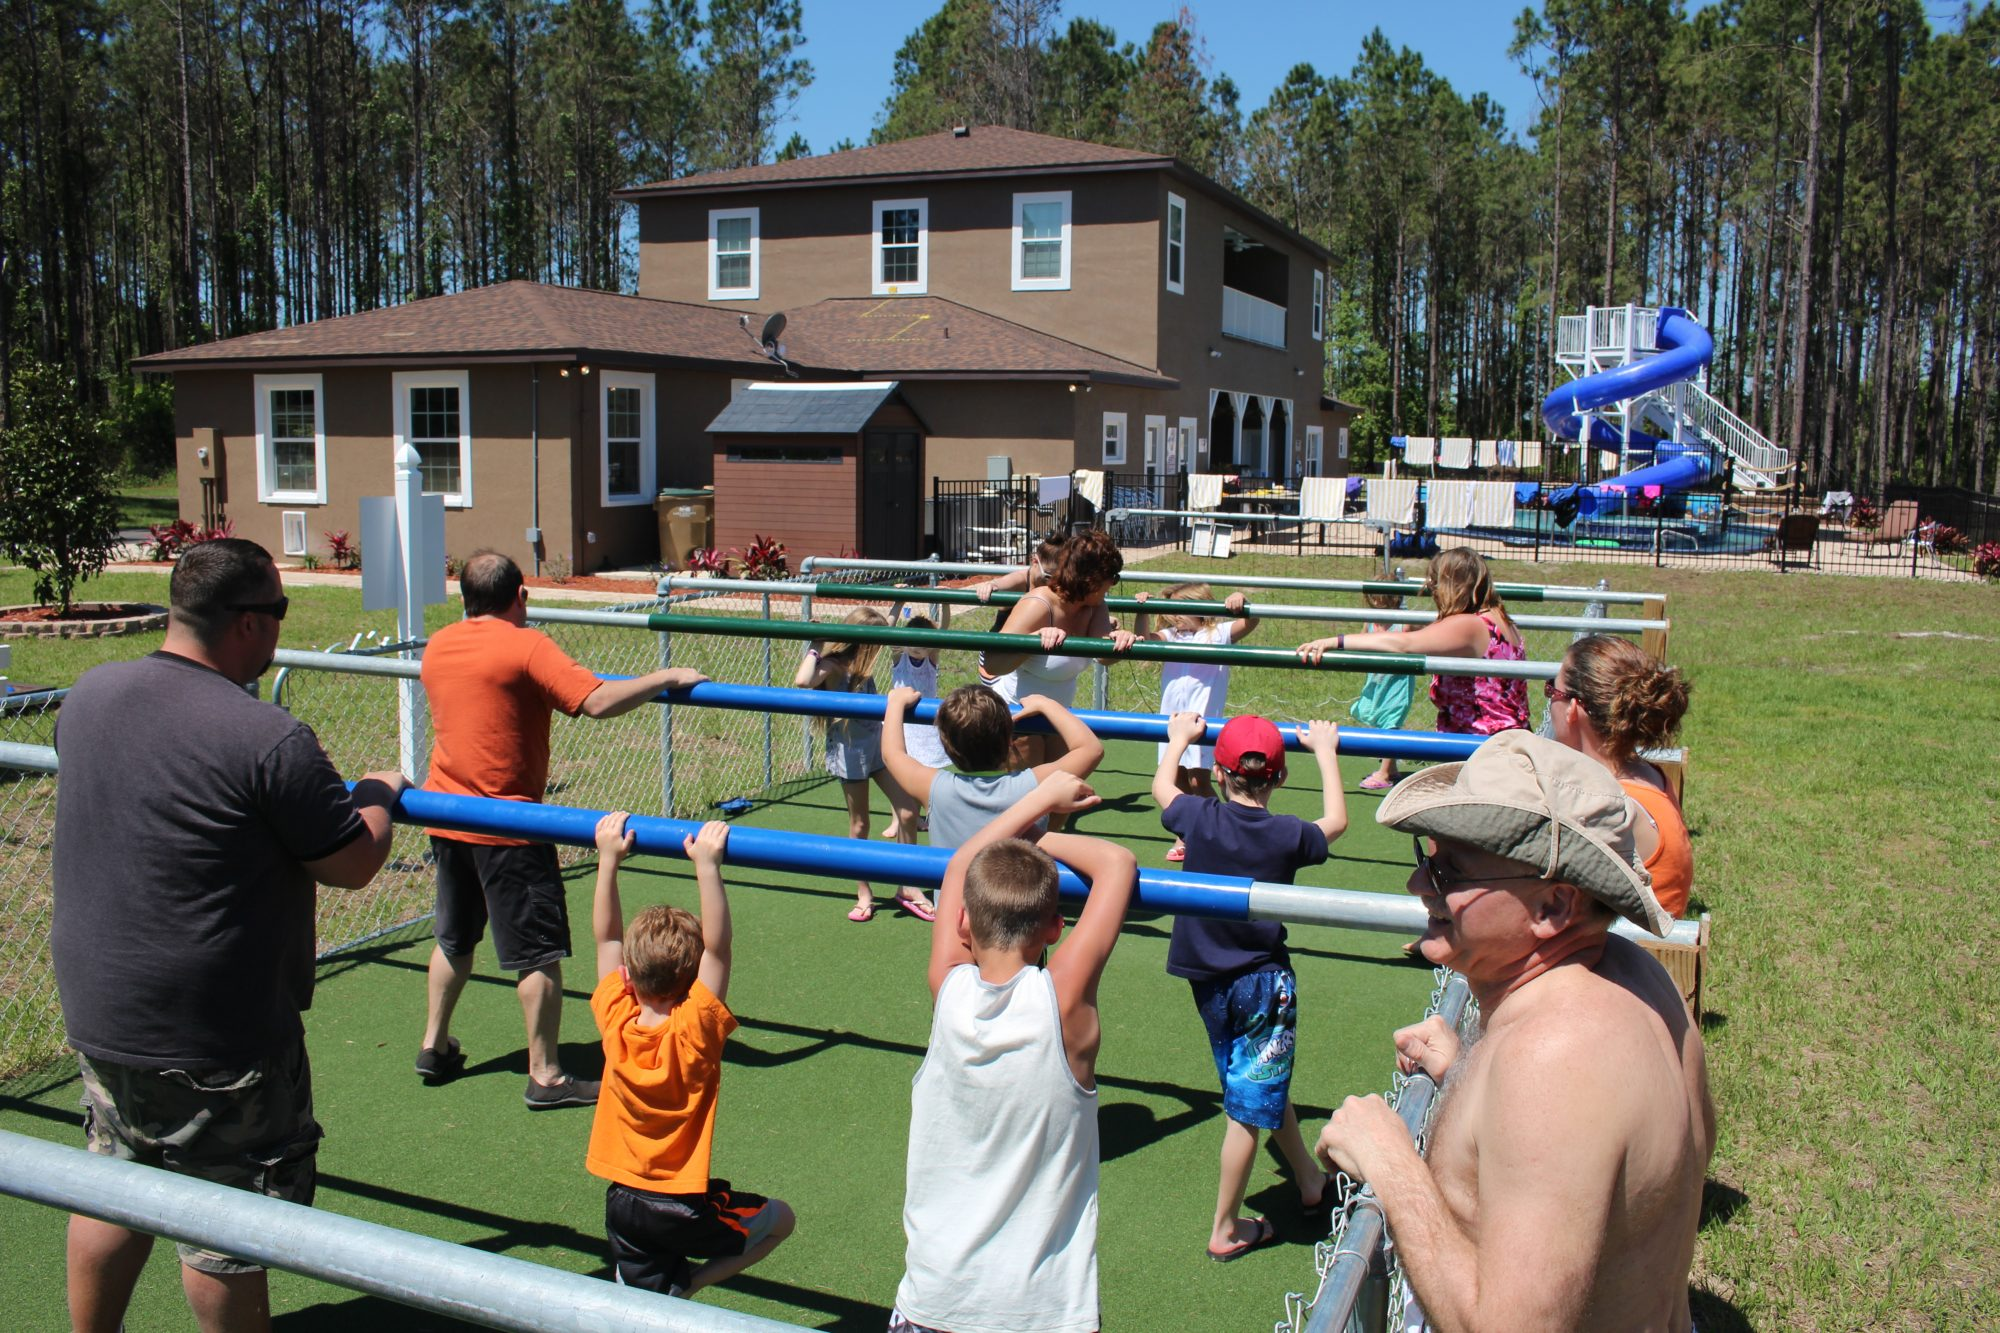 Southern Living Great Escape Lakeside Human Foosball